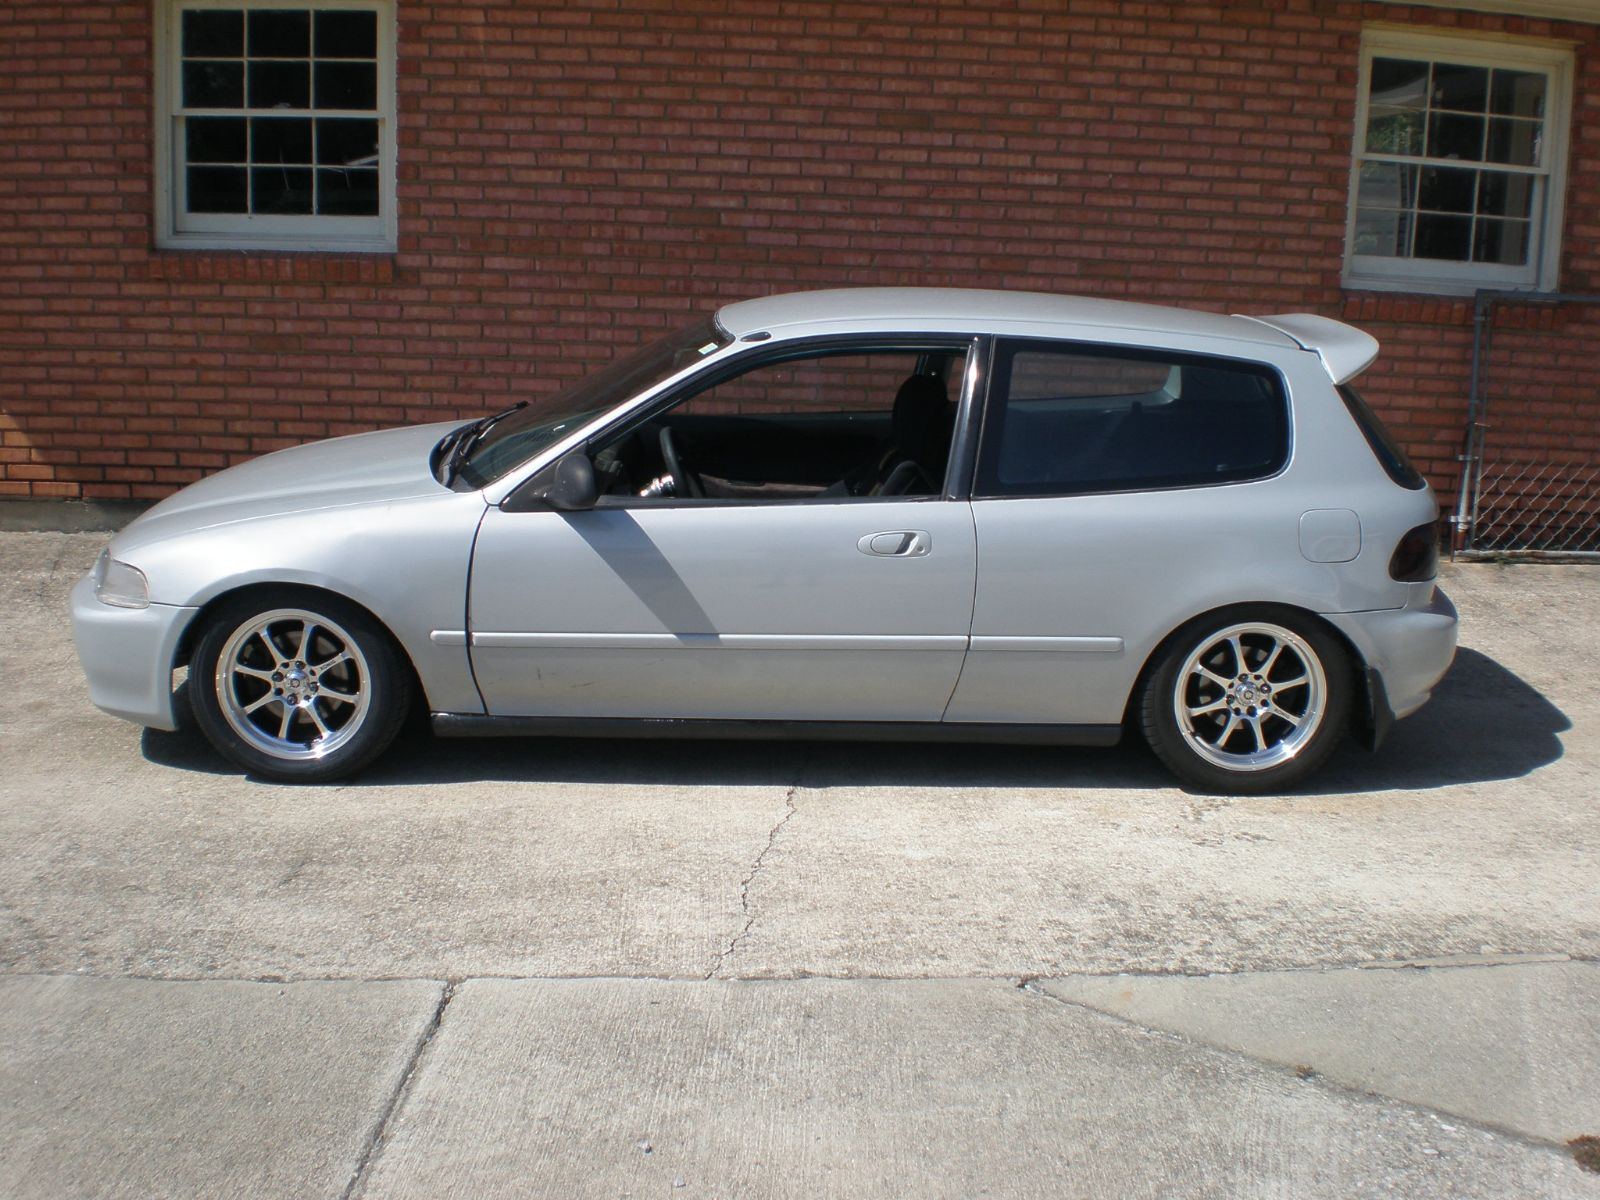 1992 honda civic hatchback for sale pell city alabama. Black Bedroom Furniture Sets. Home Design Ideas